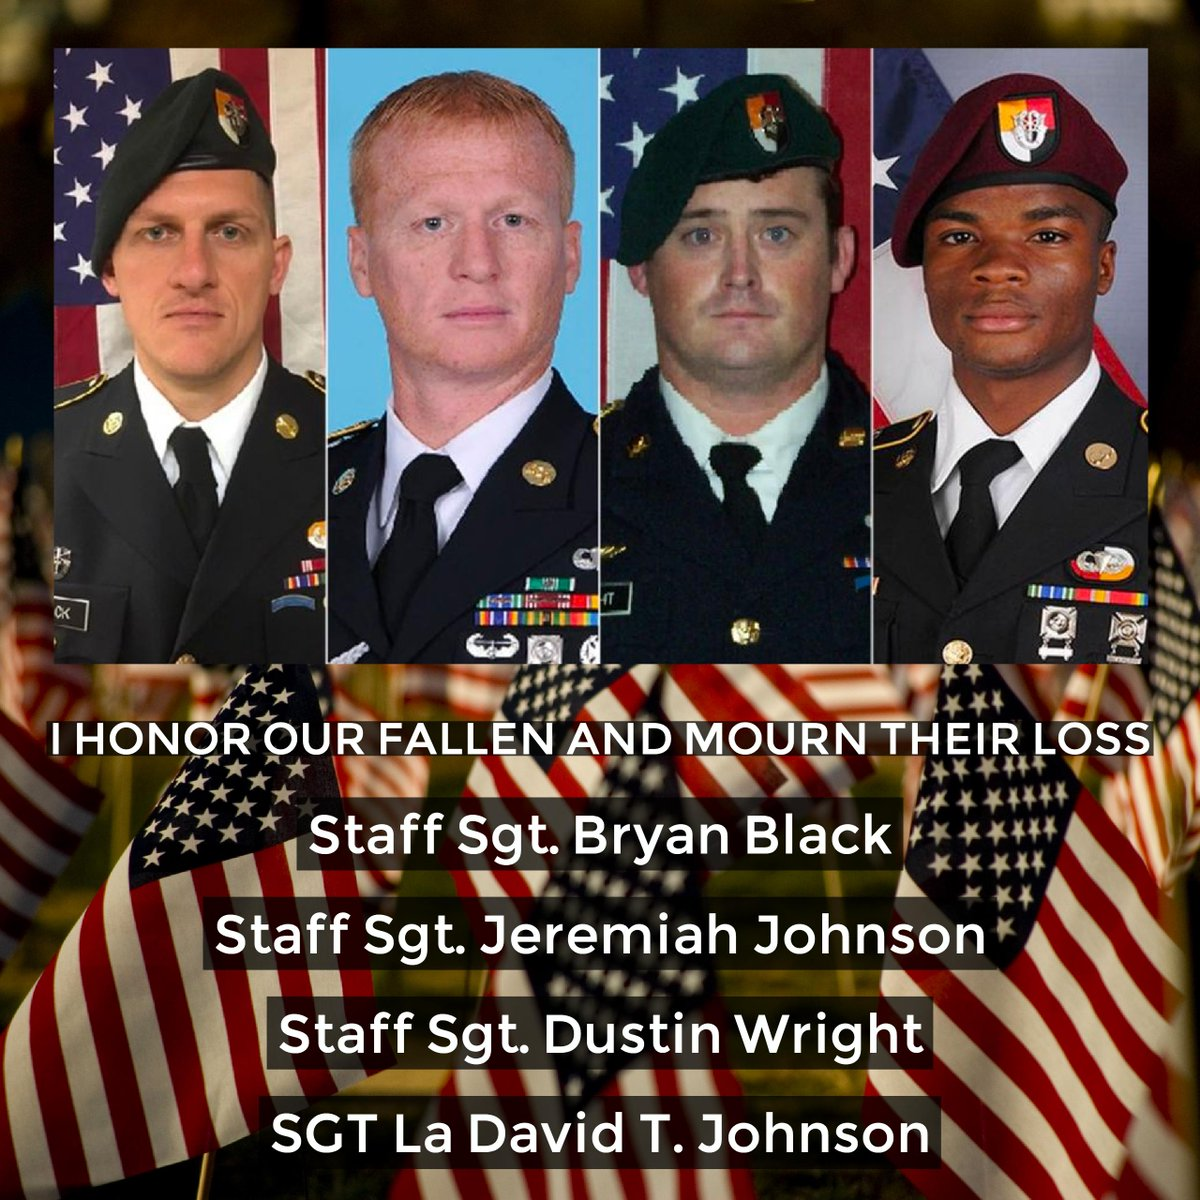 The 4 soldiers who lost their lives in service to their country. I am grateful 4 their service &amp; mourn their loss. #Trump needs to as well. <br>http://pic.twitter.com/t4s2ruxAUo